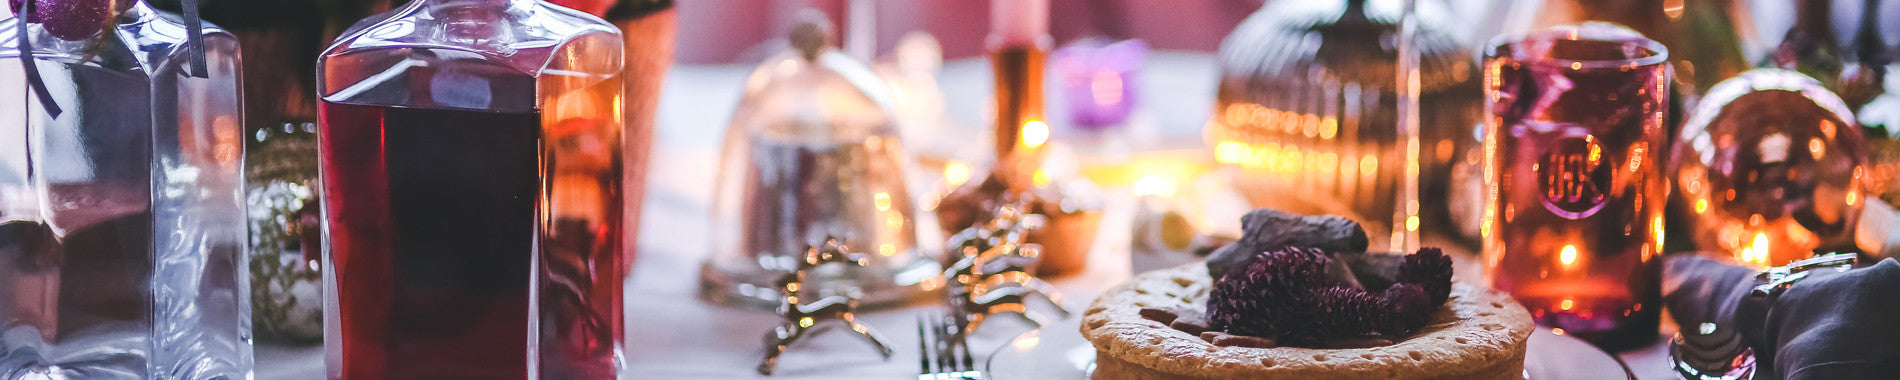 What to Avoid at the Holiday Buffet